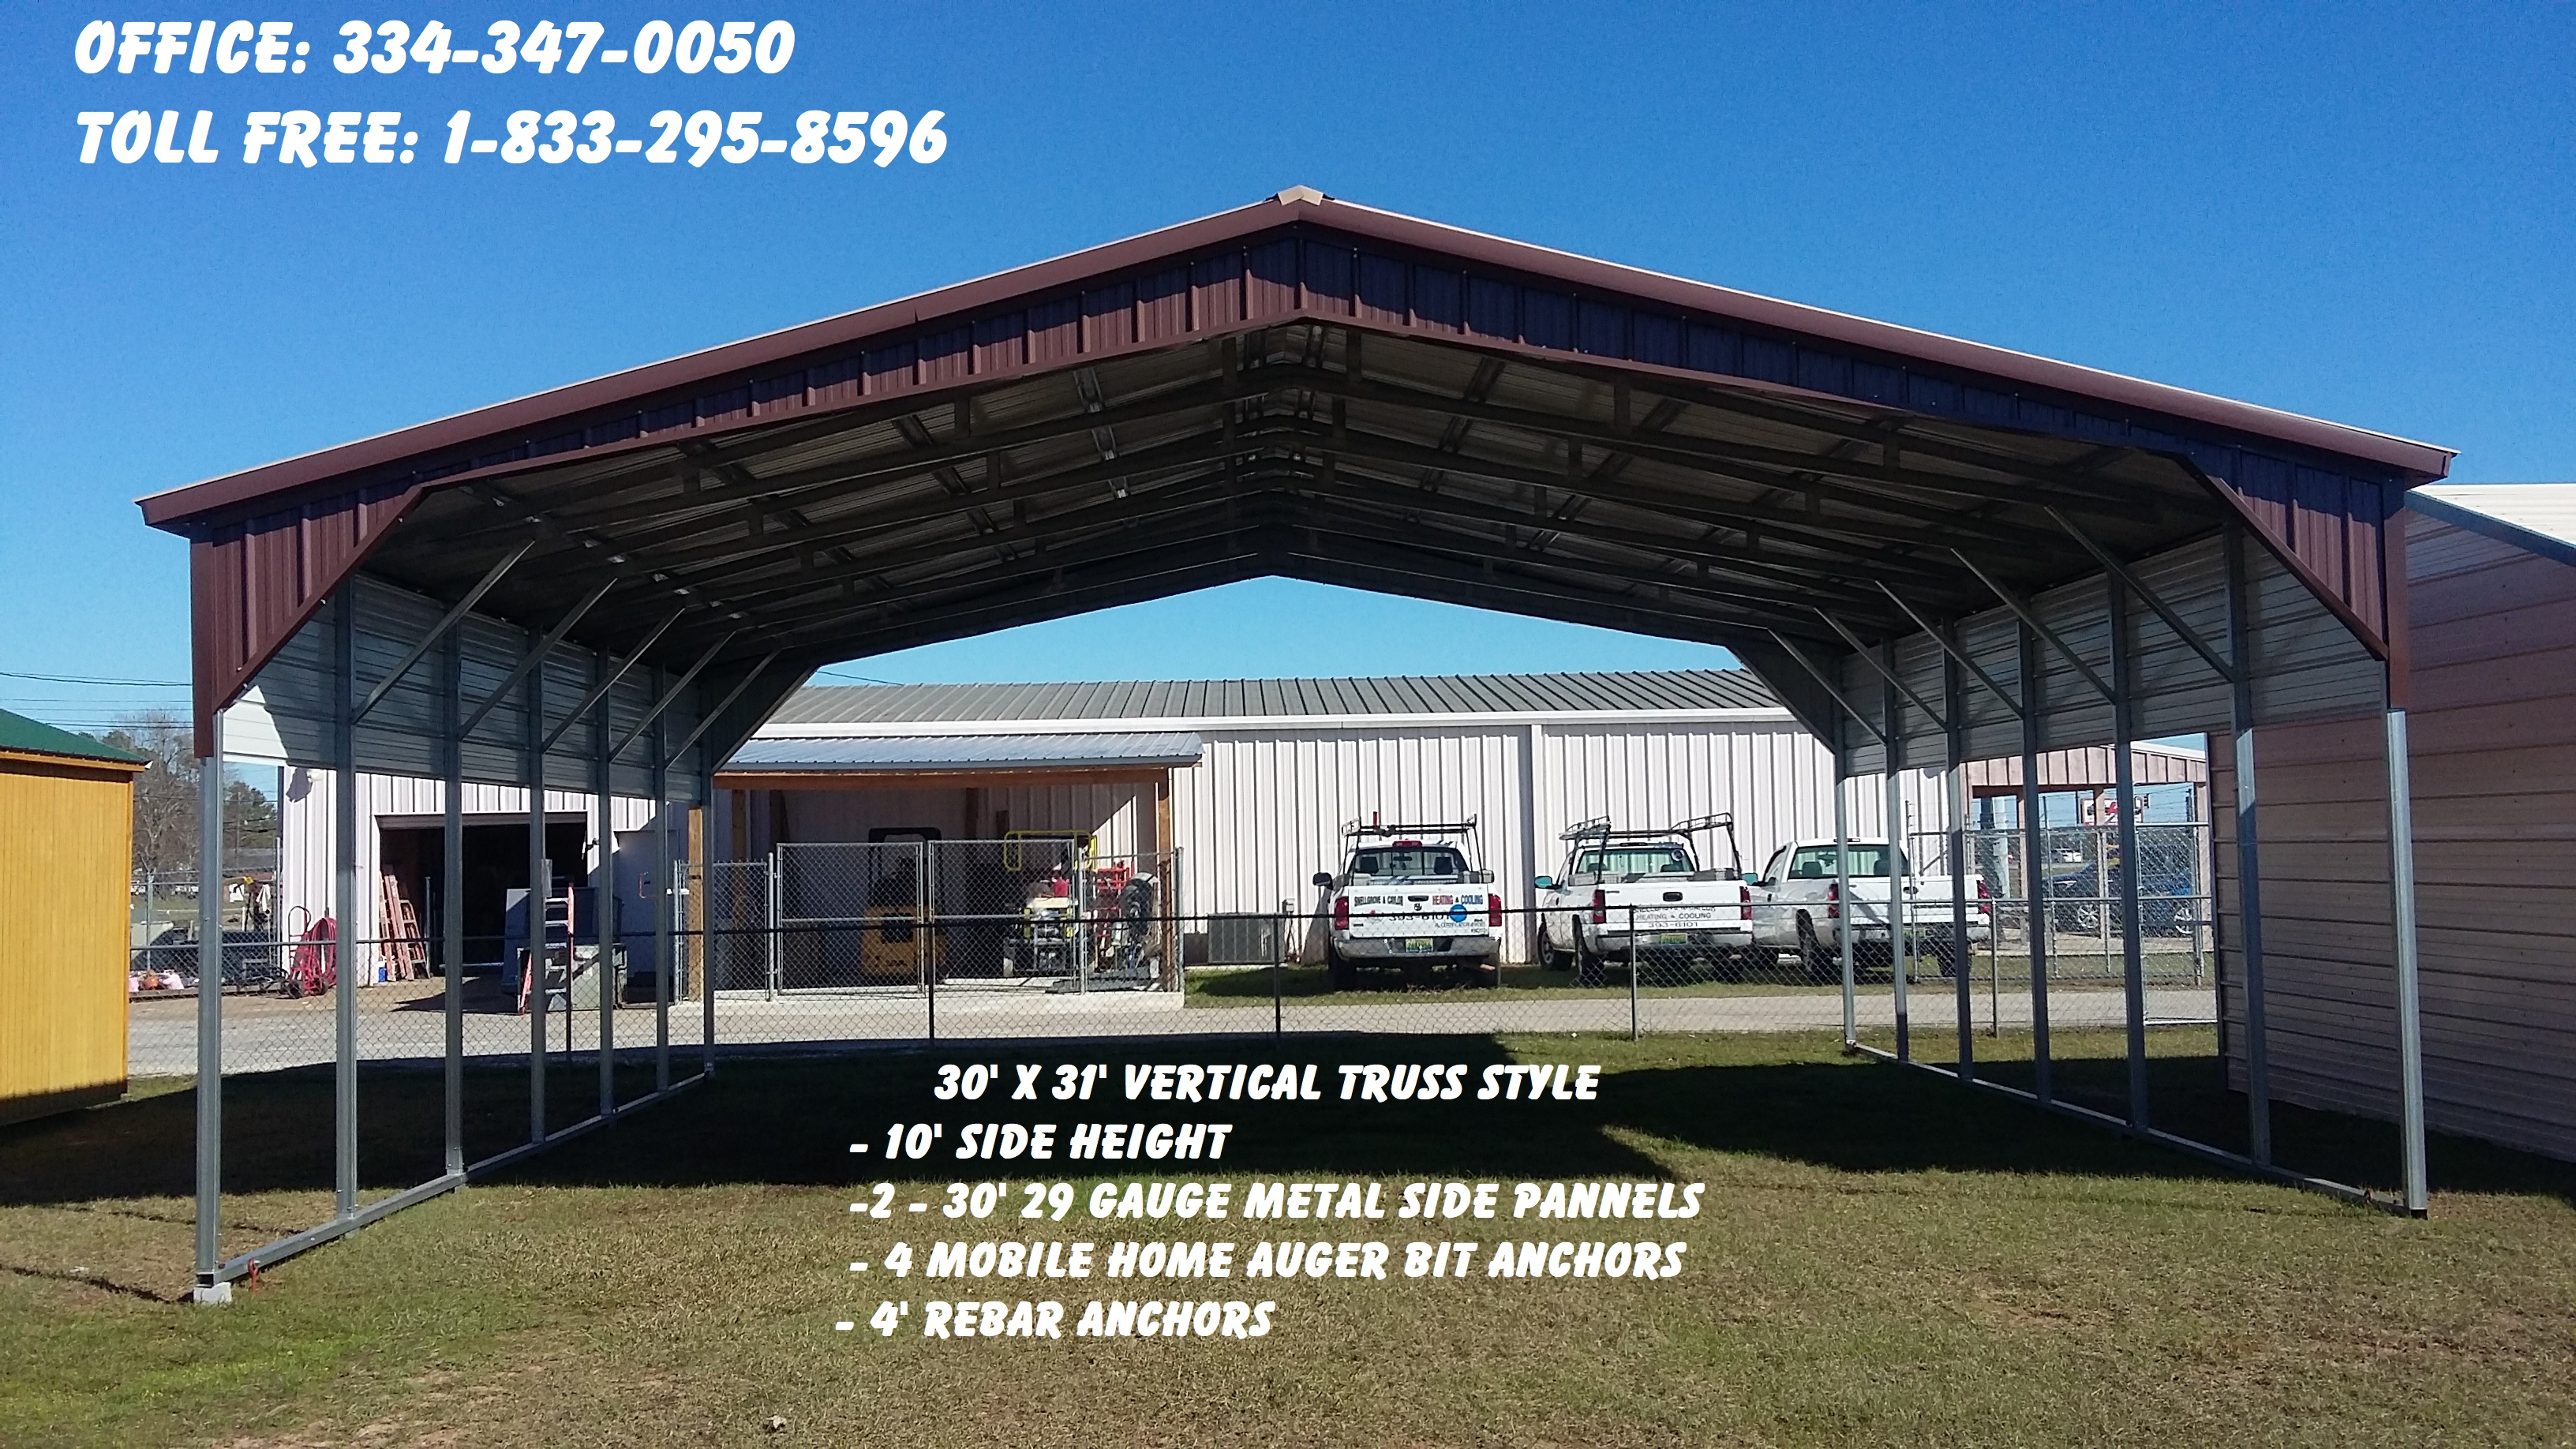 30' x 31' A Frame Triple Wide with 10' side height